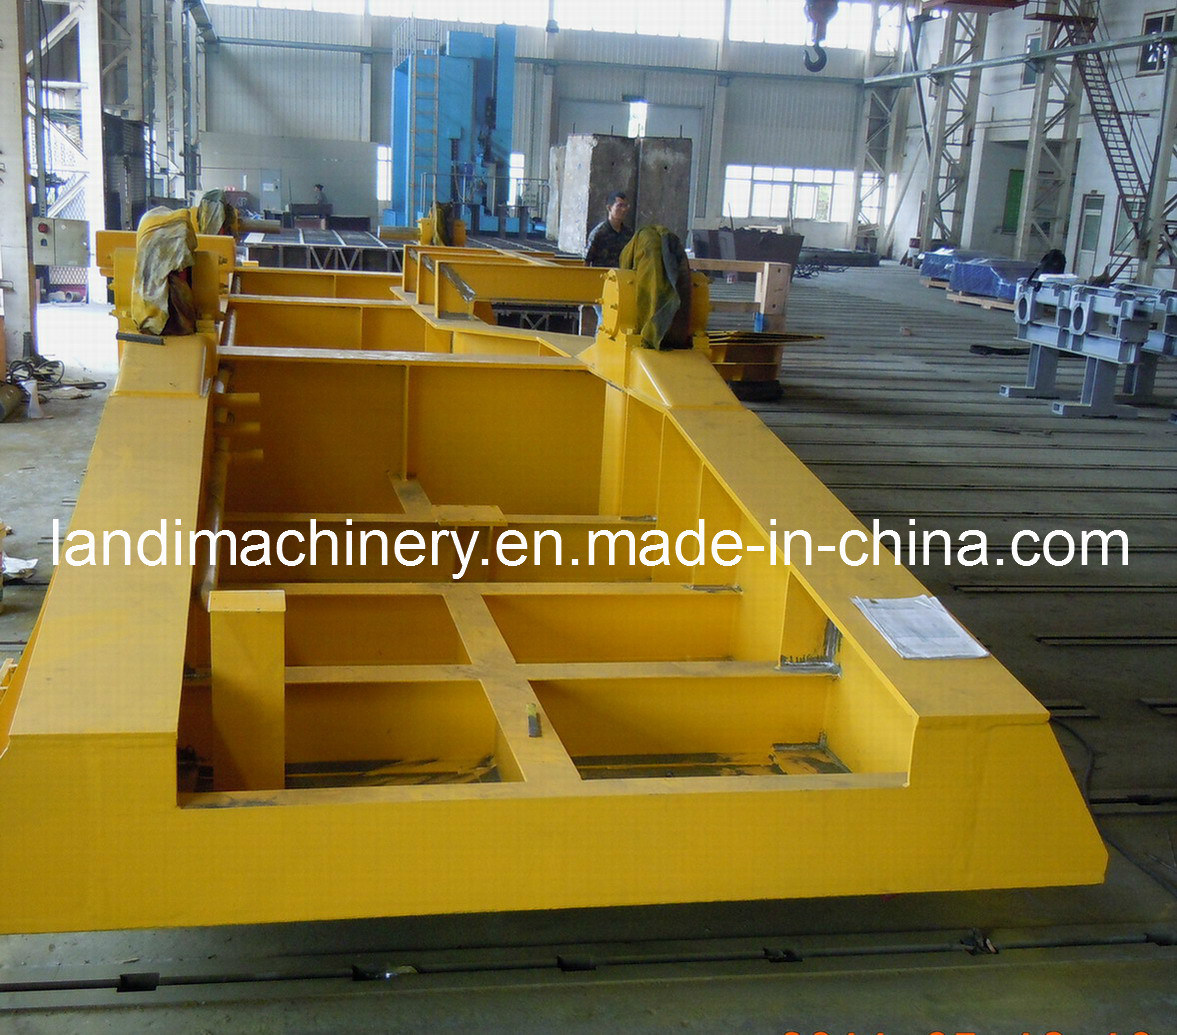 Steel Frame Fabrication for Metallurgy Machinery